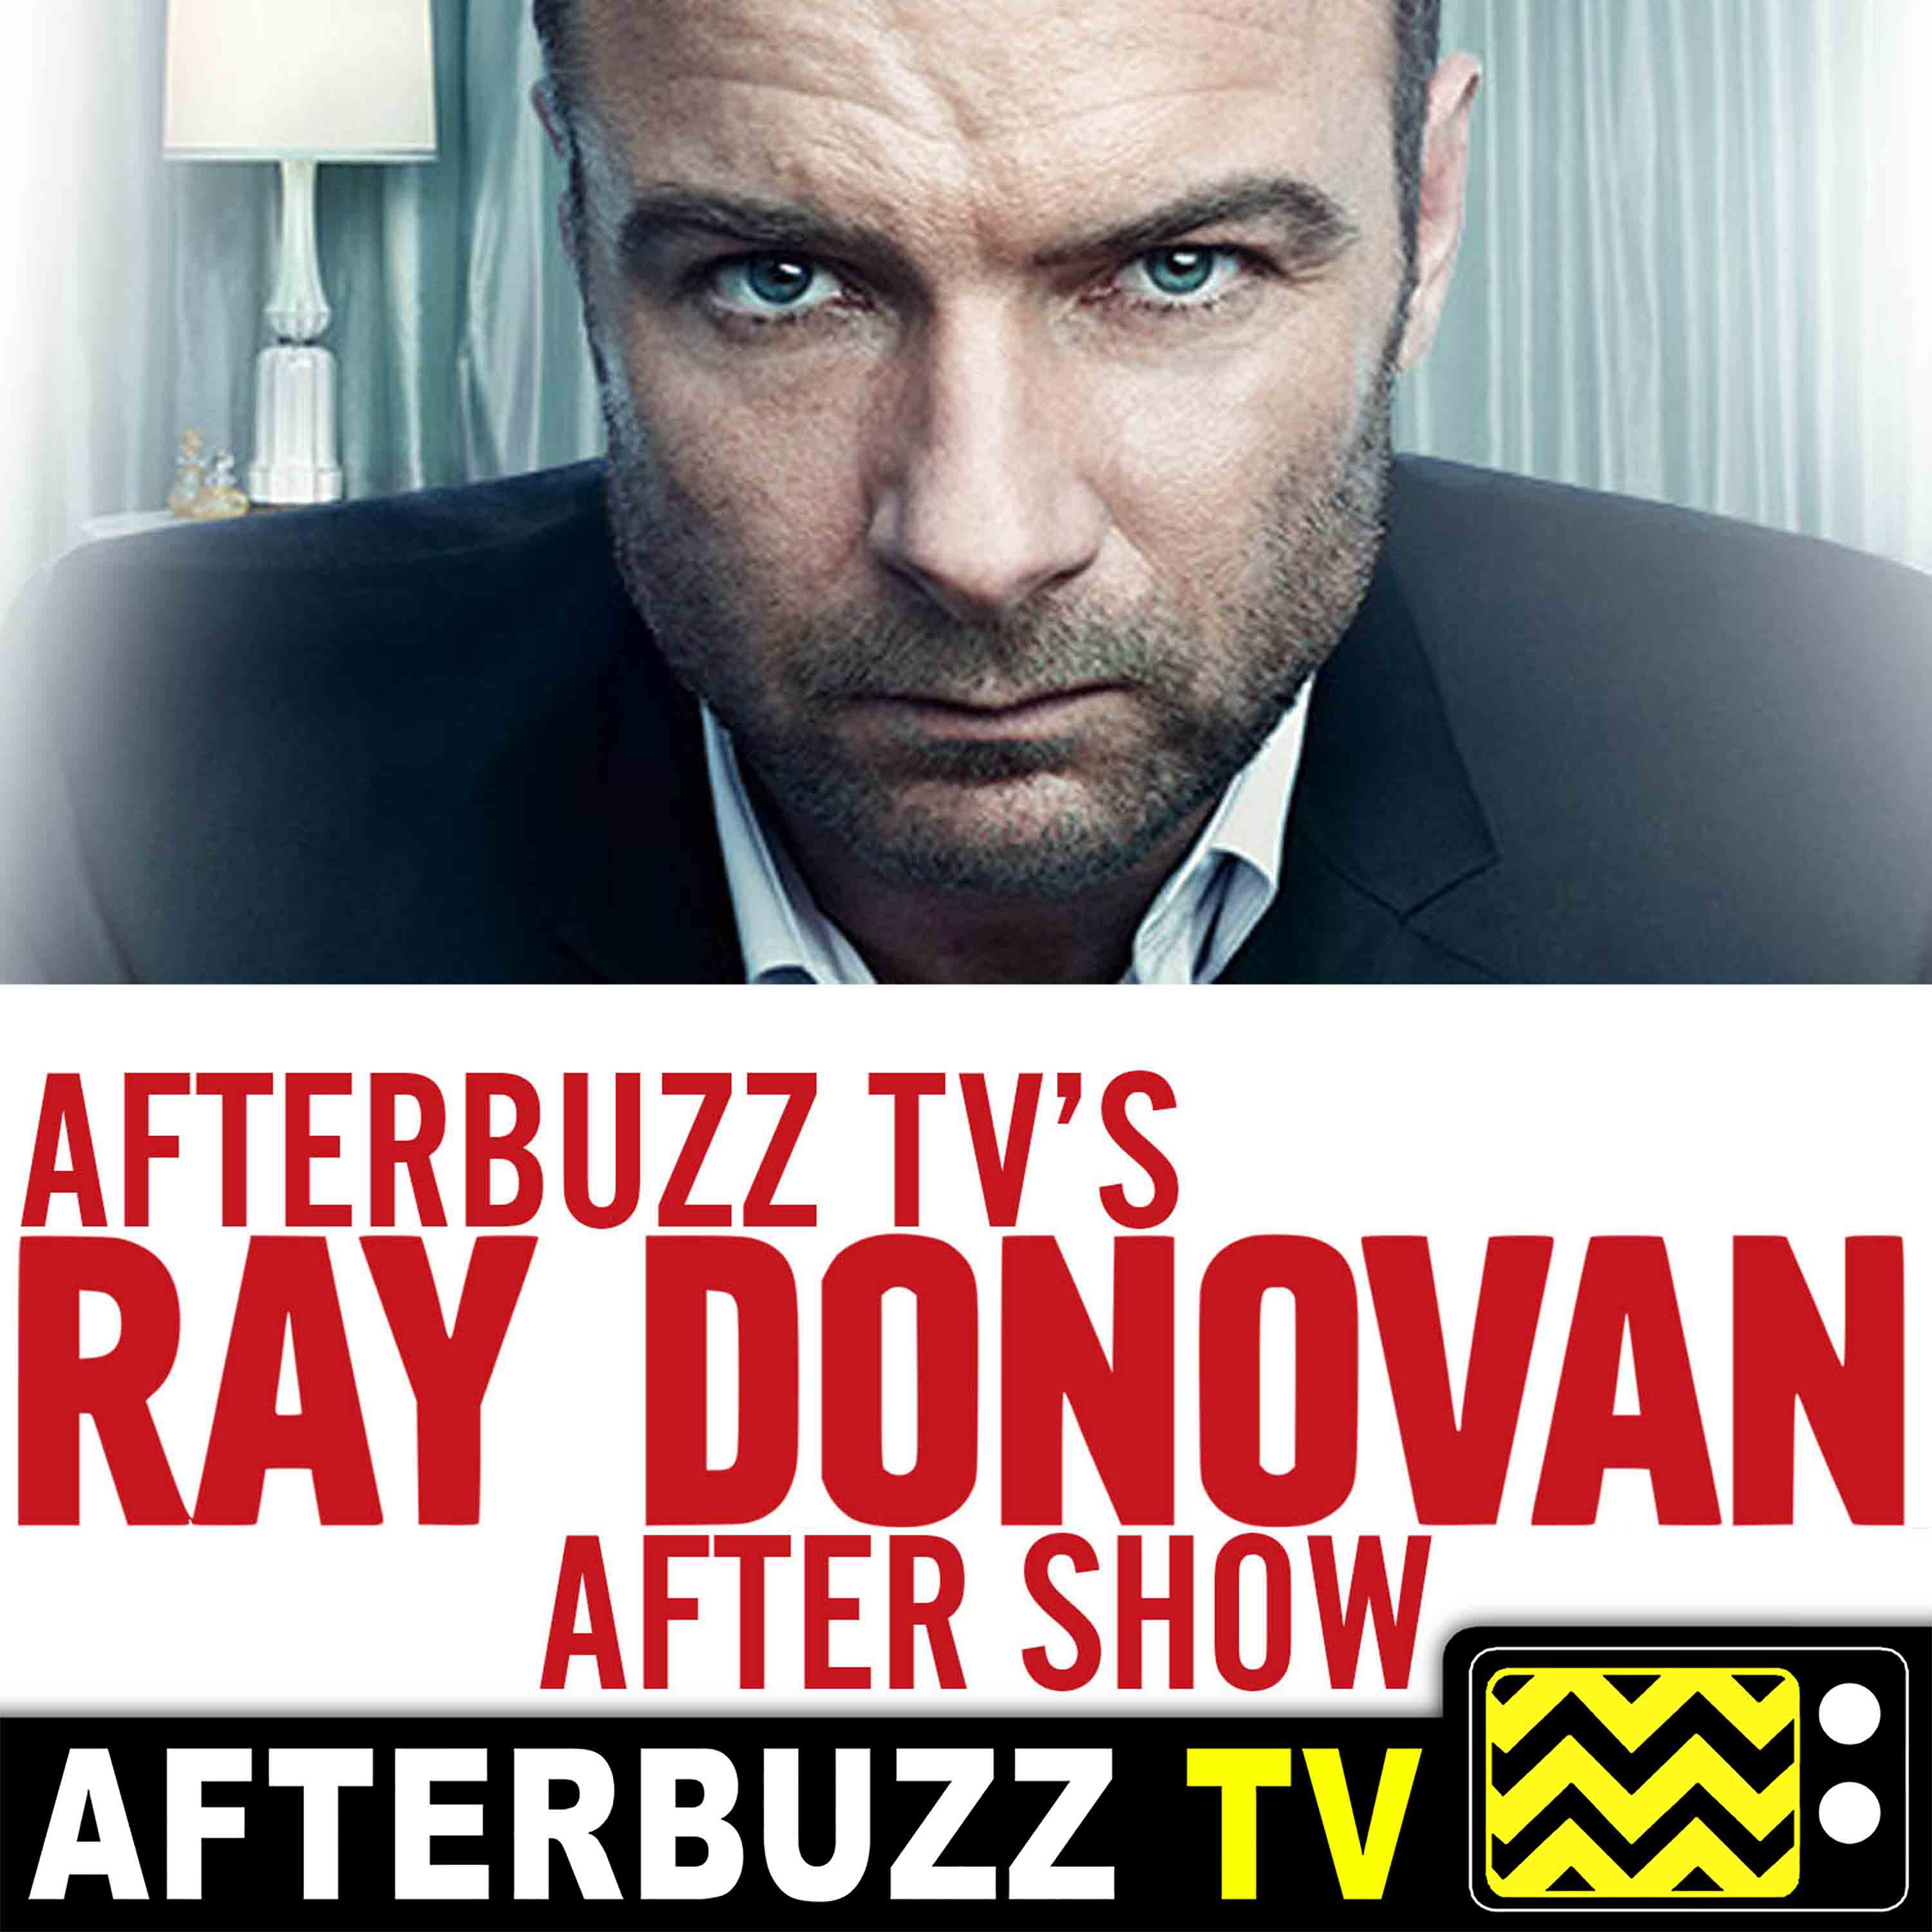 Ray Donovan Reviews and After Show - AfterBuzz TV